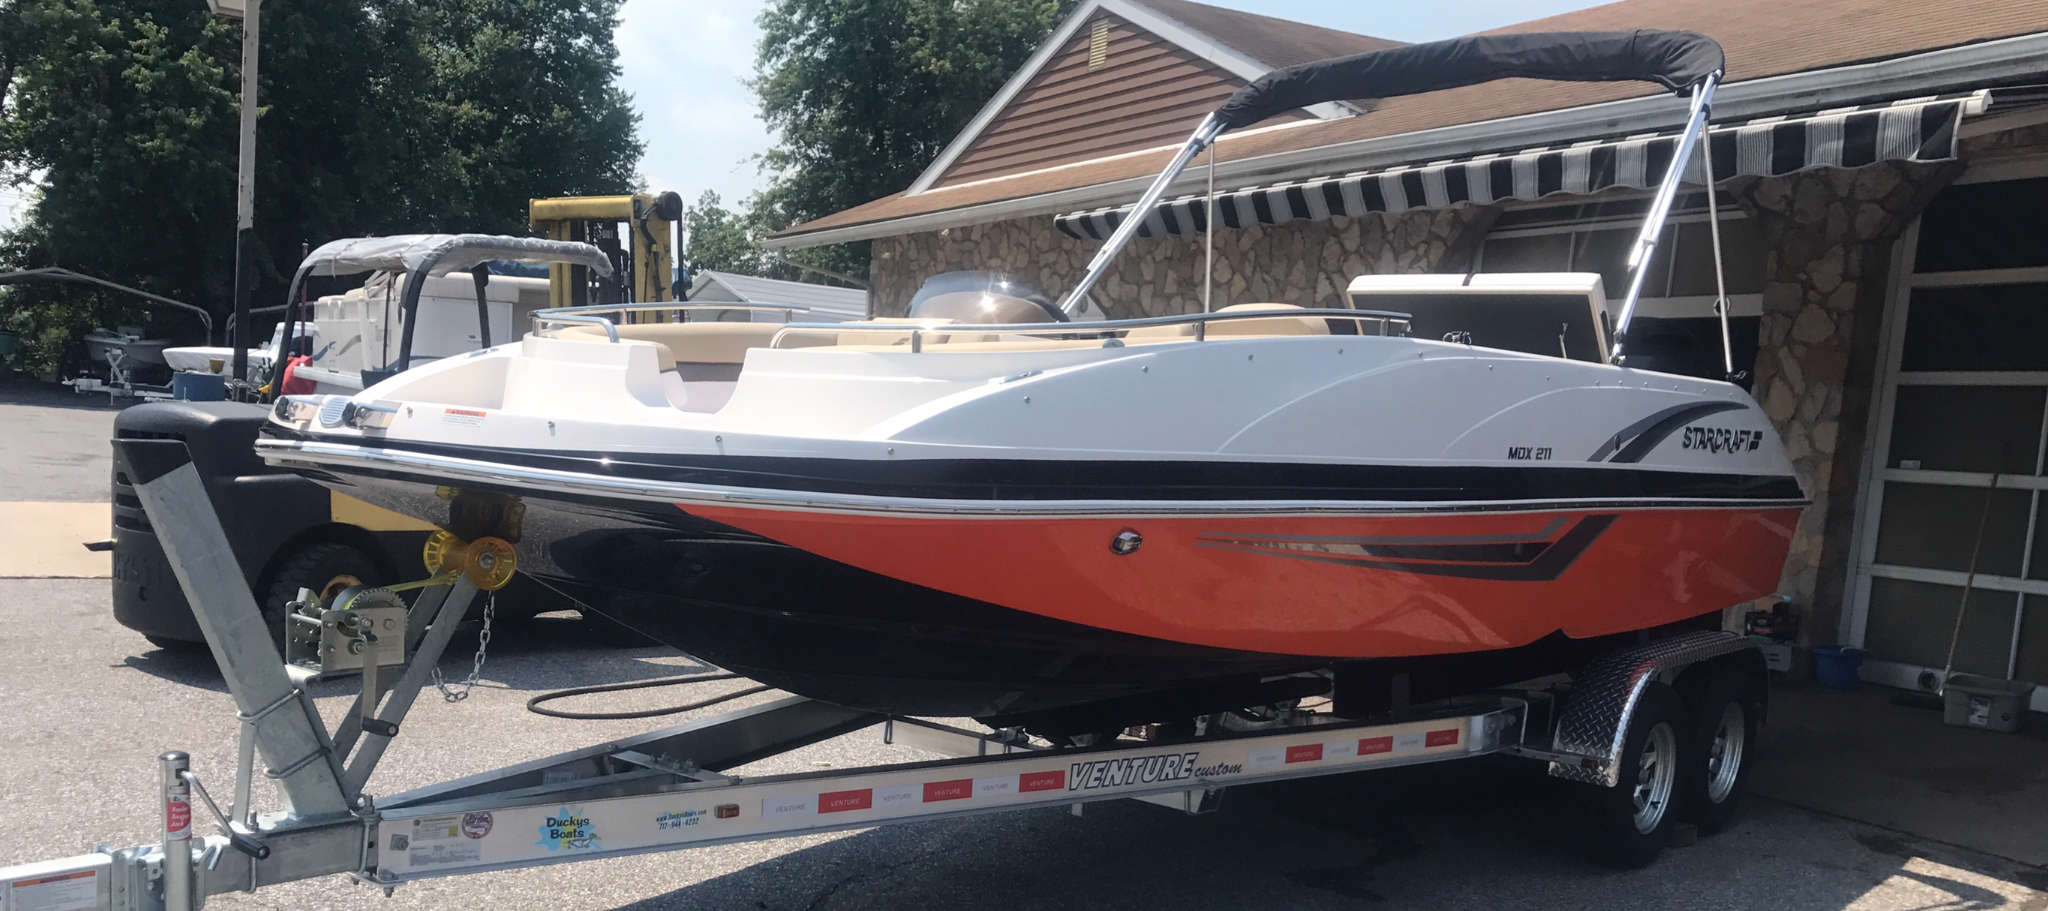 Boat Dealers In Pa >> New And Used Boat Packages Sale Priced Now Massive Boat Package